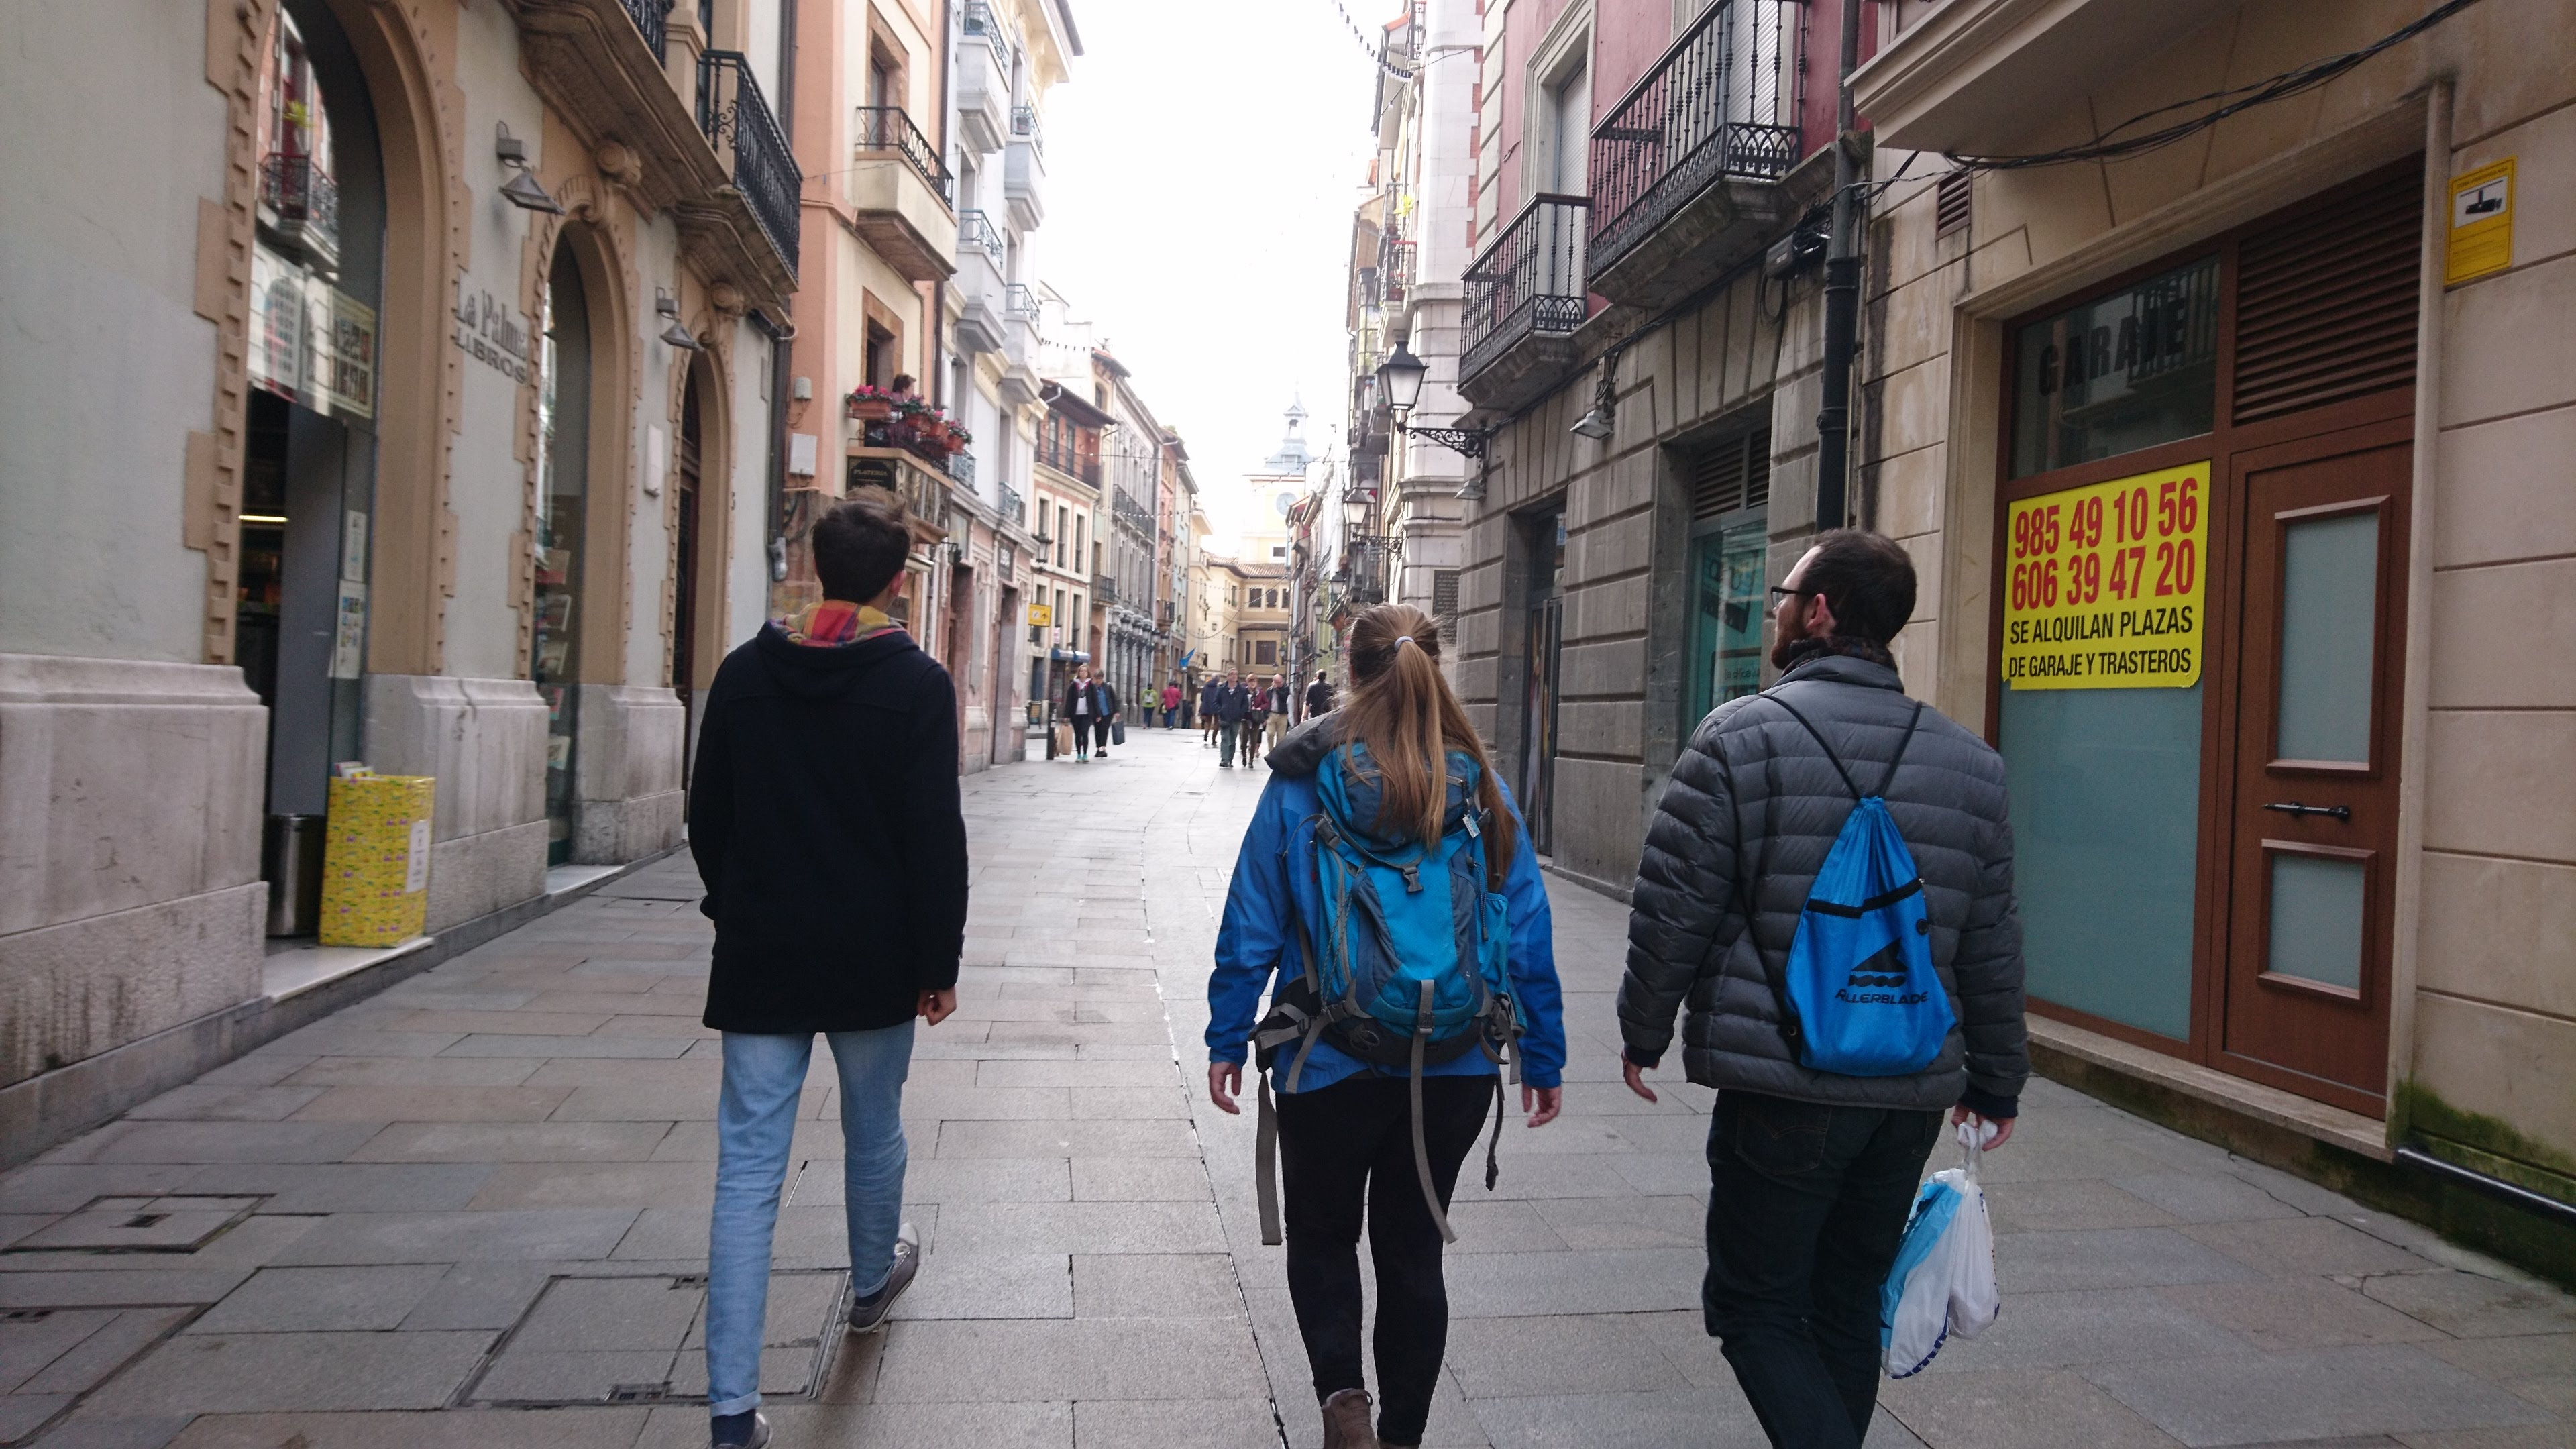 Students in Oviedo